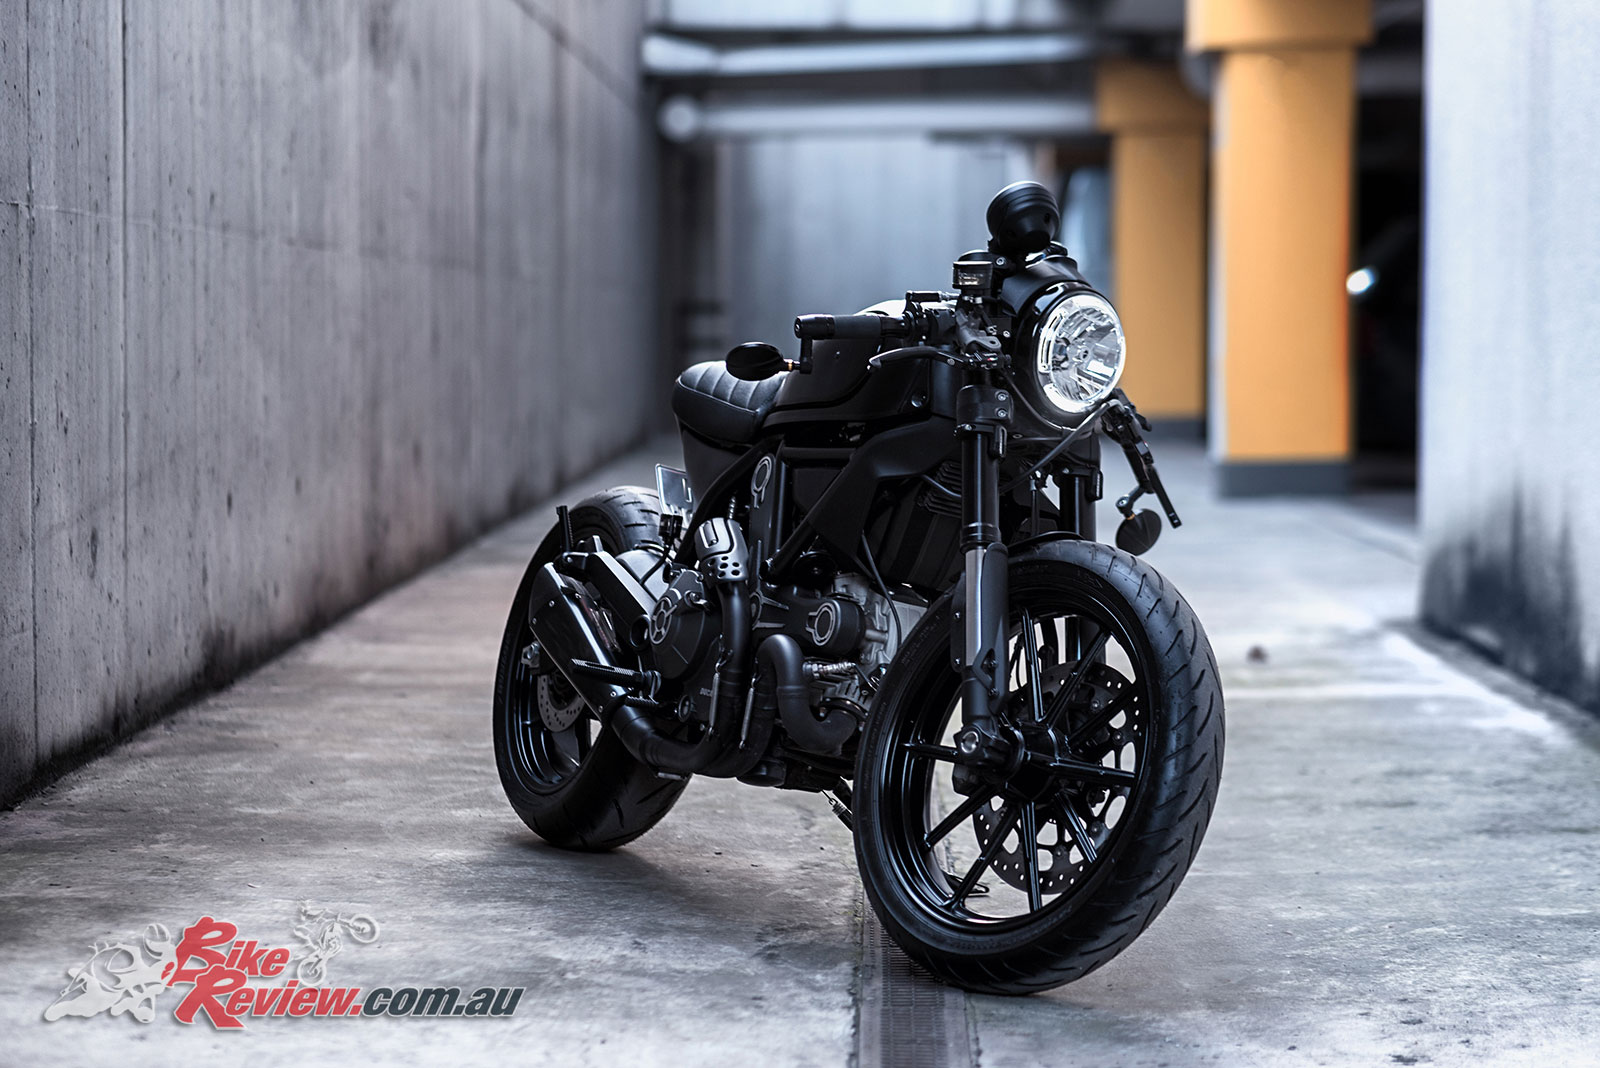 Ducati's Custom Rumble competition returns in 2019 - The Batass, 2018 Finalist